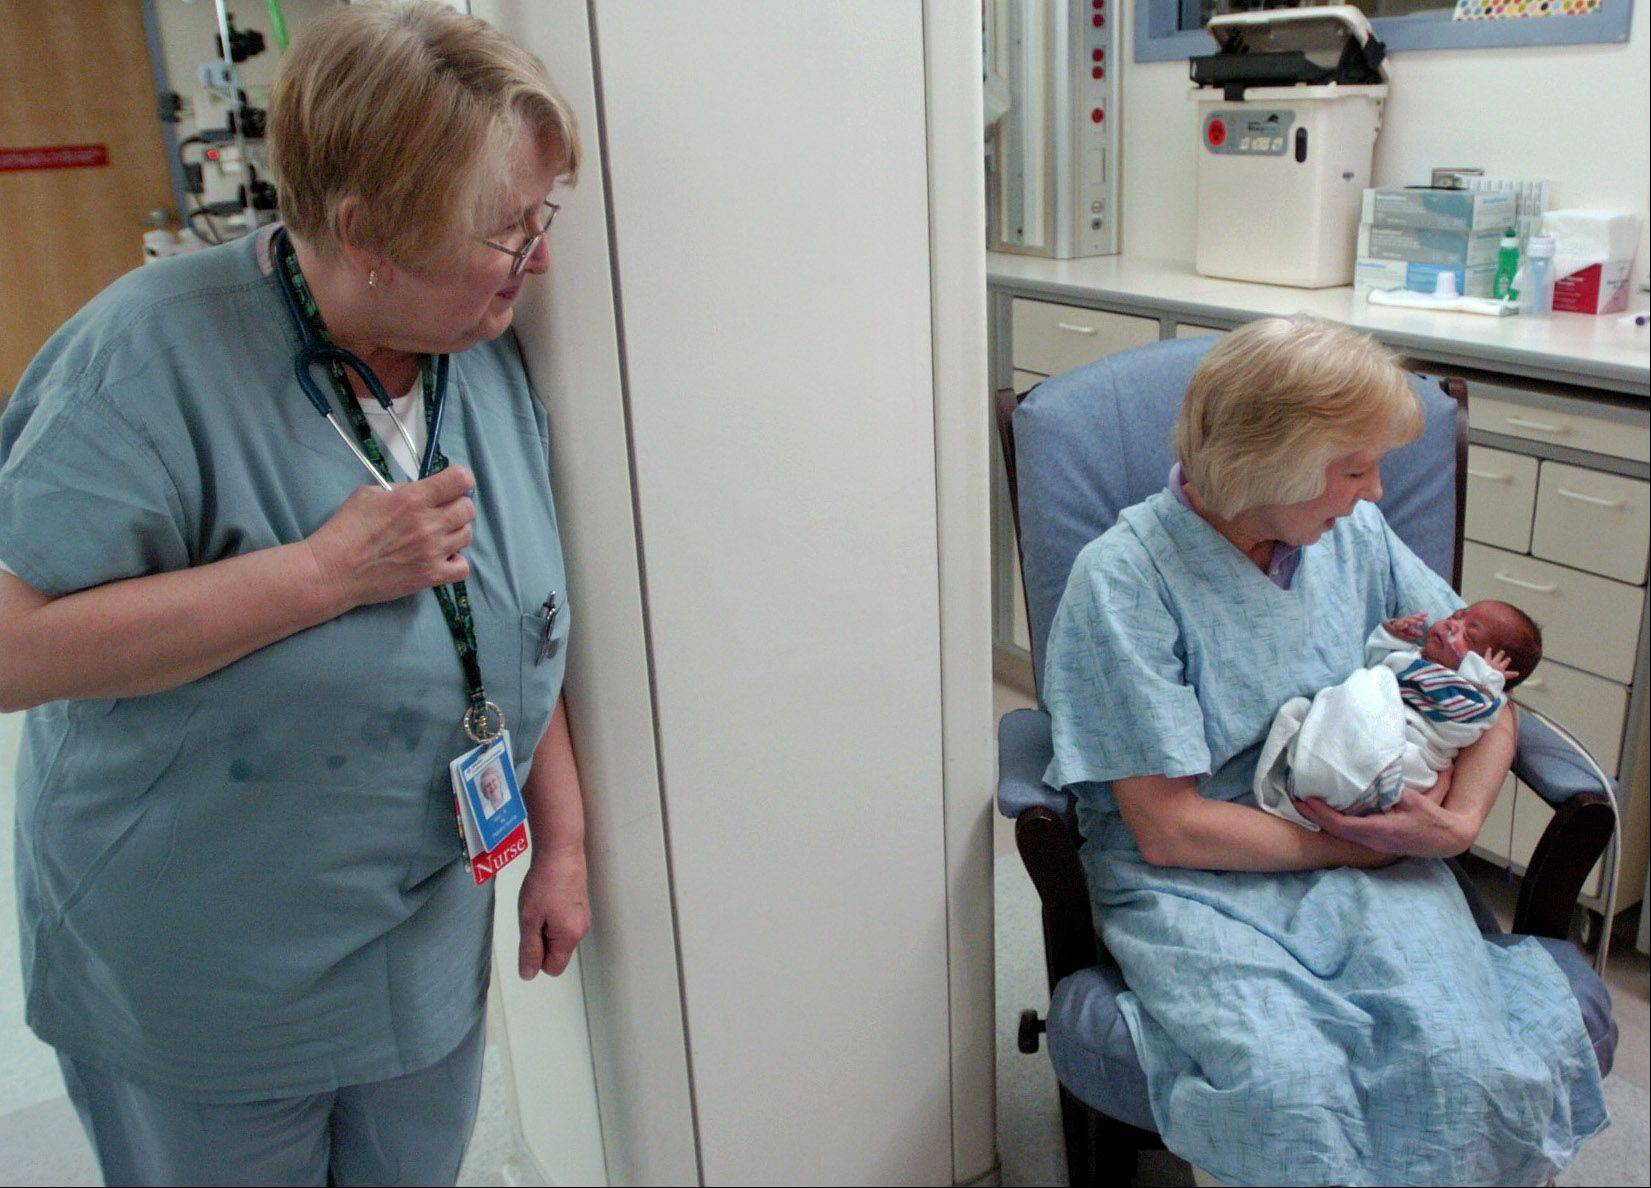 Registered nurse Mary Jane Bennett peeks in on volunteer Trudy Lewis with a 3-month-old in the Neonatal Intensive Care Unit at Advocate Lutheran General Hospital.